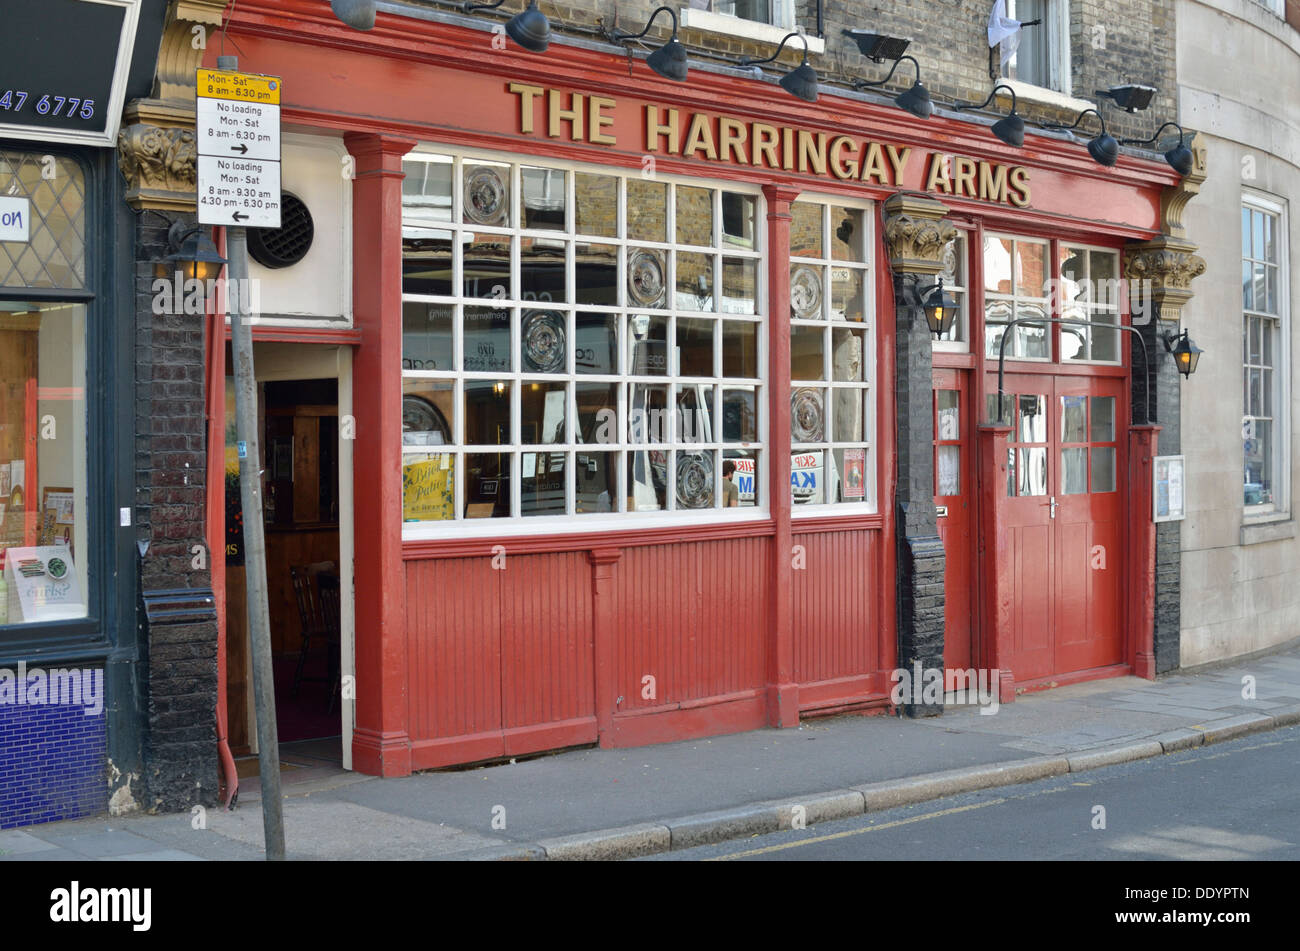 The Haringey Arms pub in Crouch End, London, UK. - Stock Image